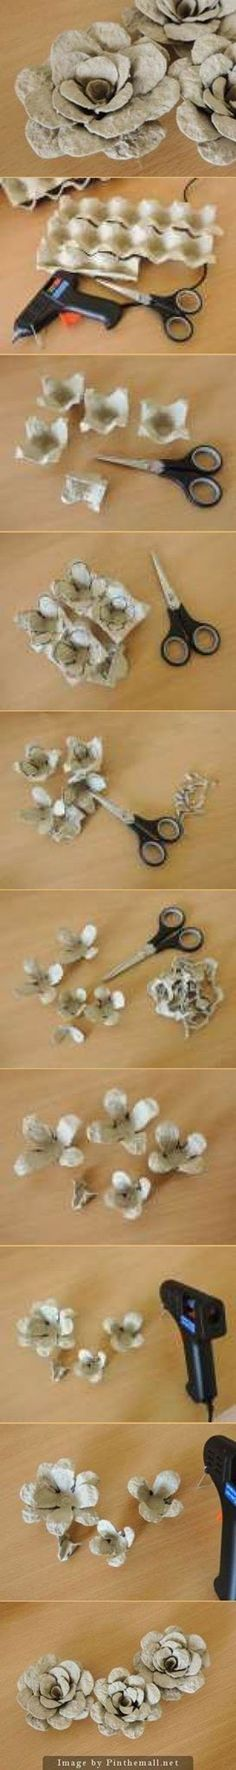 The whole detailed photo tutorial on how to make these egg carton flowers - Tuto. - - The whole detailed photo tutorial on how to make these egg carton flowers – Tutorial foto: trandafiri din cofraje de ouă Handmade Flowers, Diy Flowers, Fabric Flowers, Paper Flowers How To Make, Hobbies And Crafts, Diy And Crafts, Crafts For Kids, Upcycled Crafts, Diy Paper